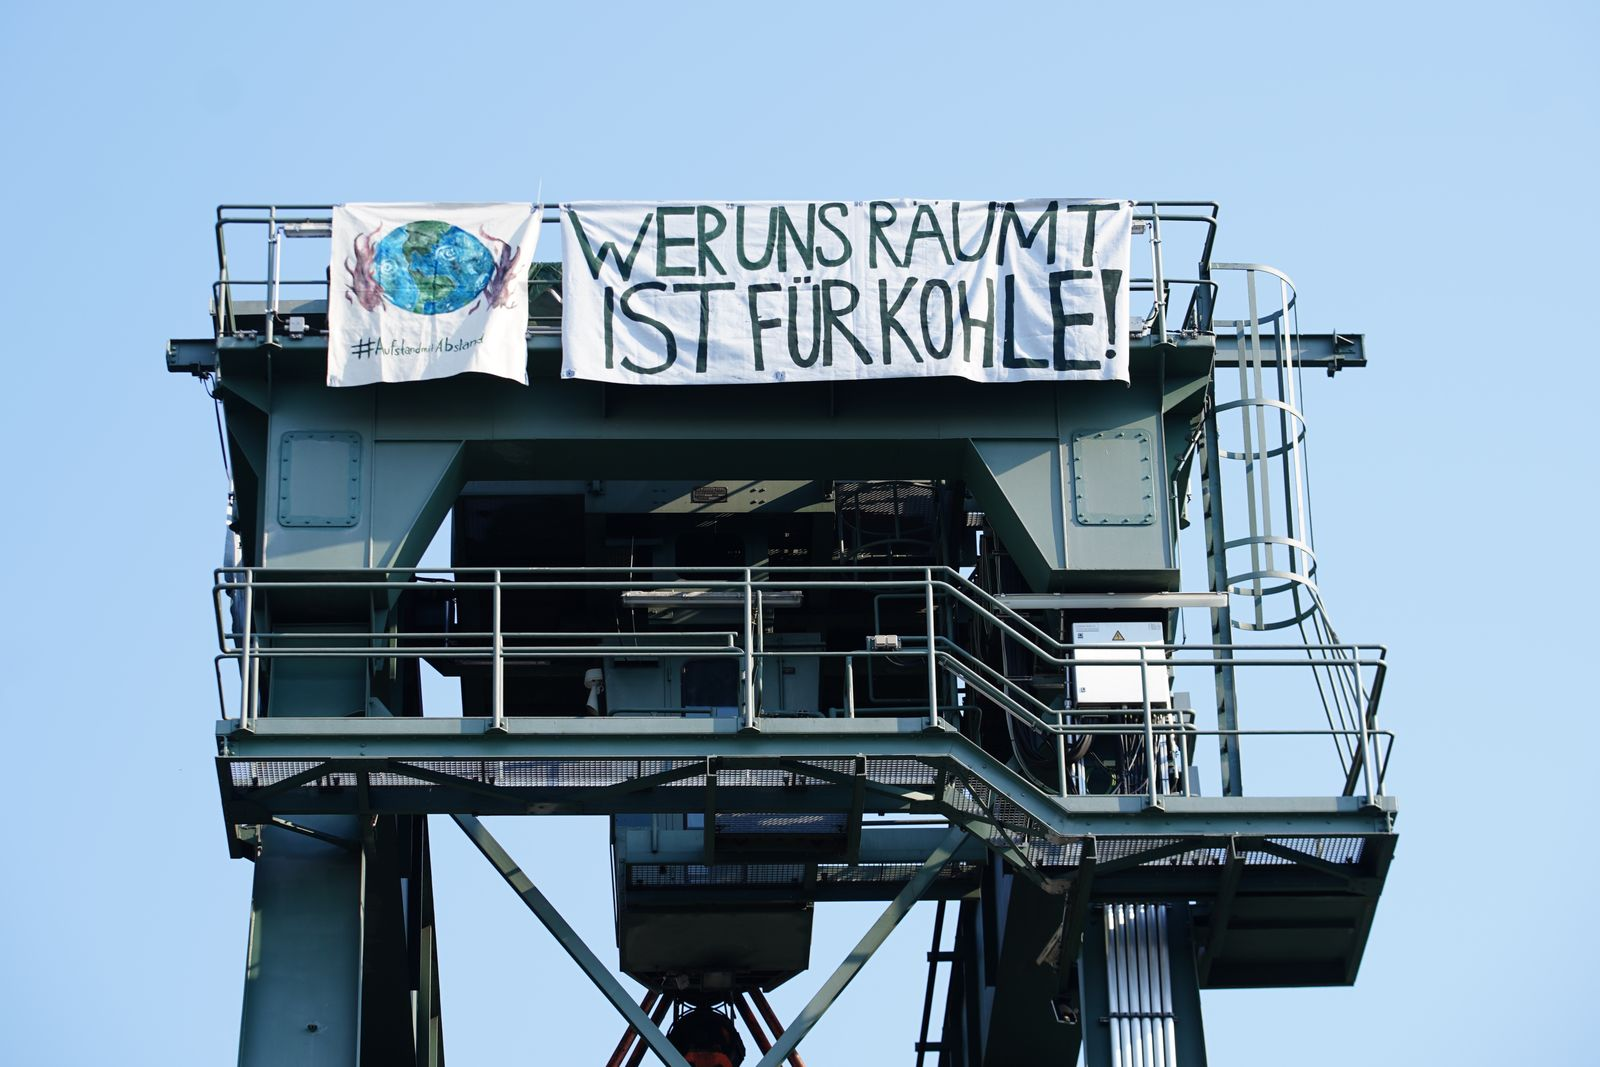 Environmental activists occupy thermal power station in Berlin, Germany - 08 Aug 2020